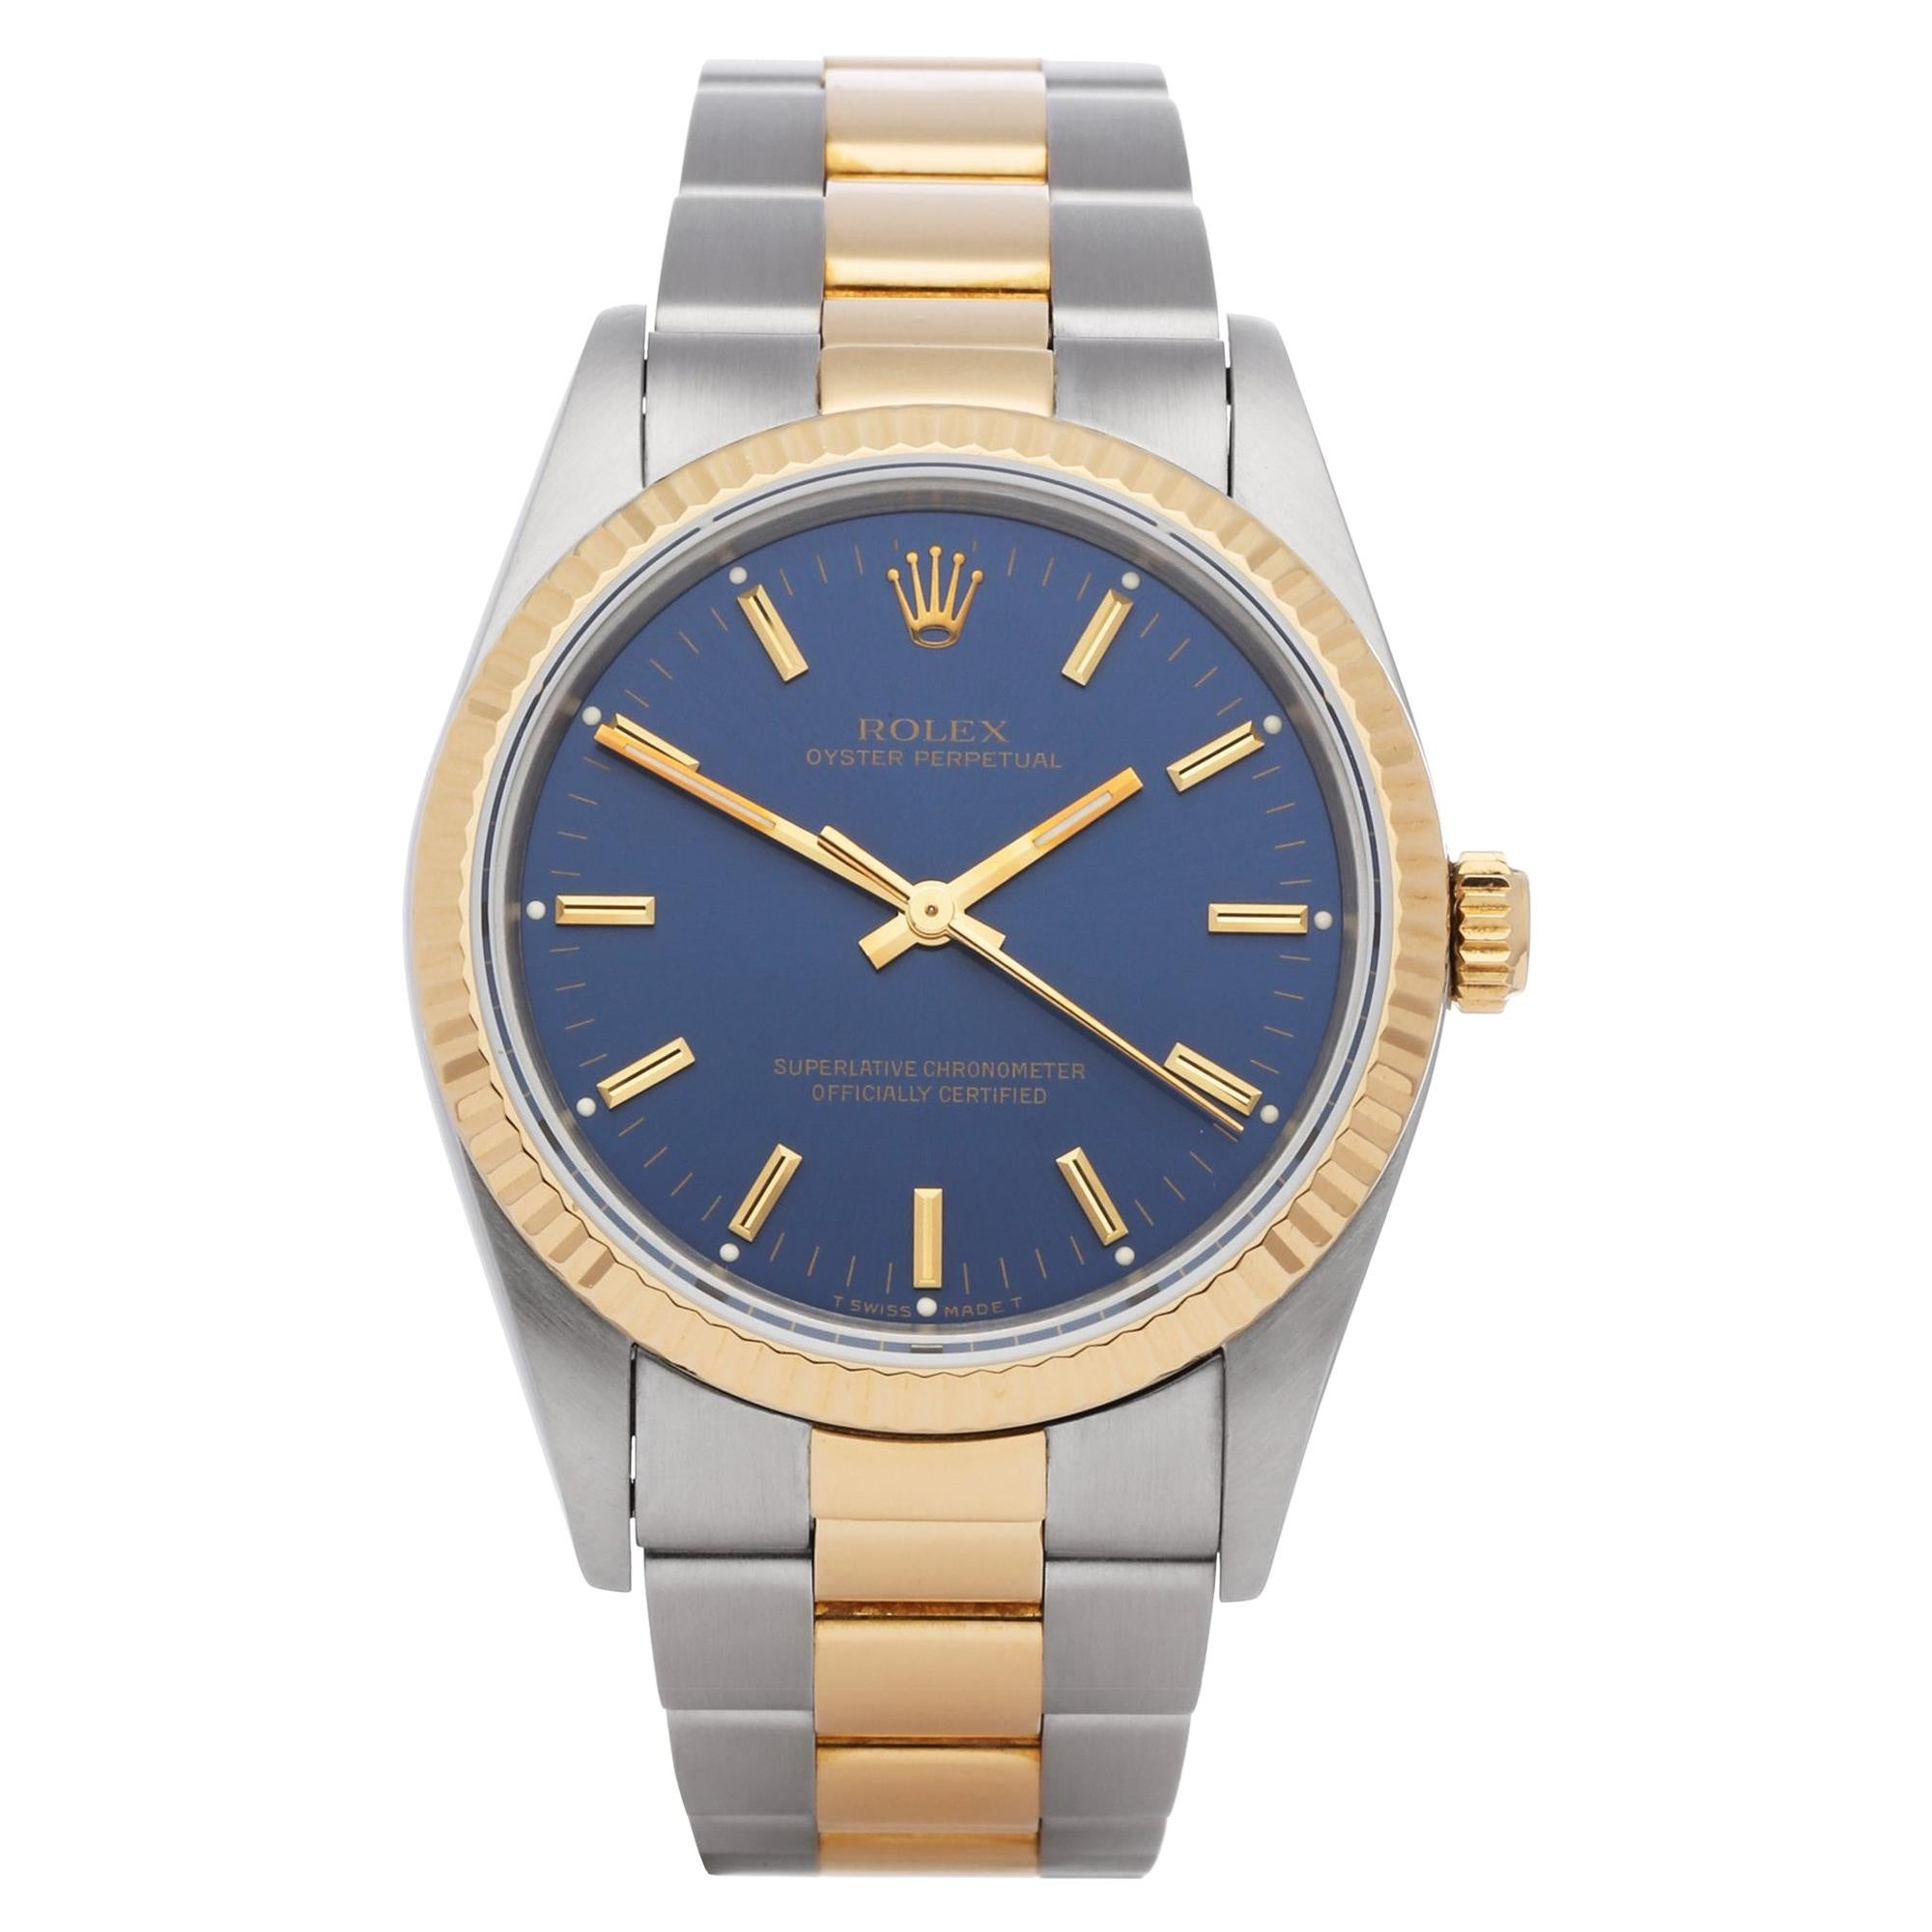 Rolex Oyster Perpetual 14233 Unisex Stainless Steel and Yellow Gold Watch